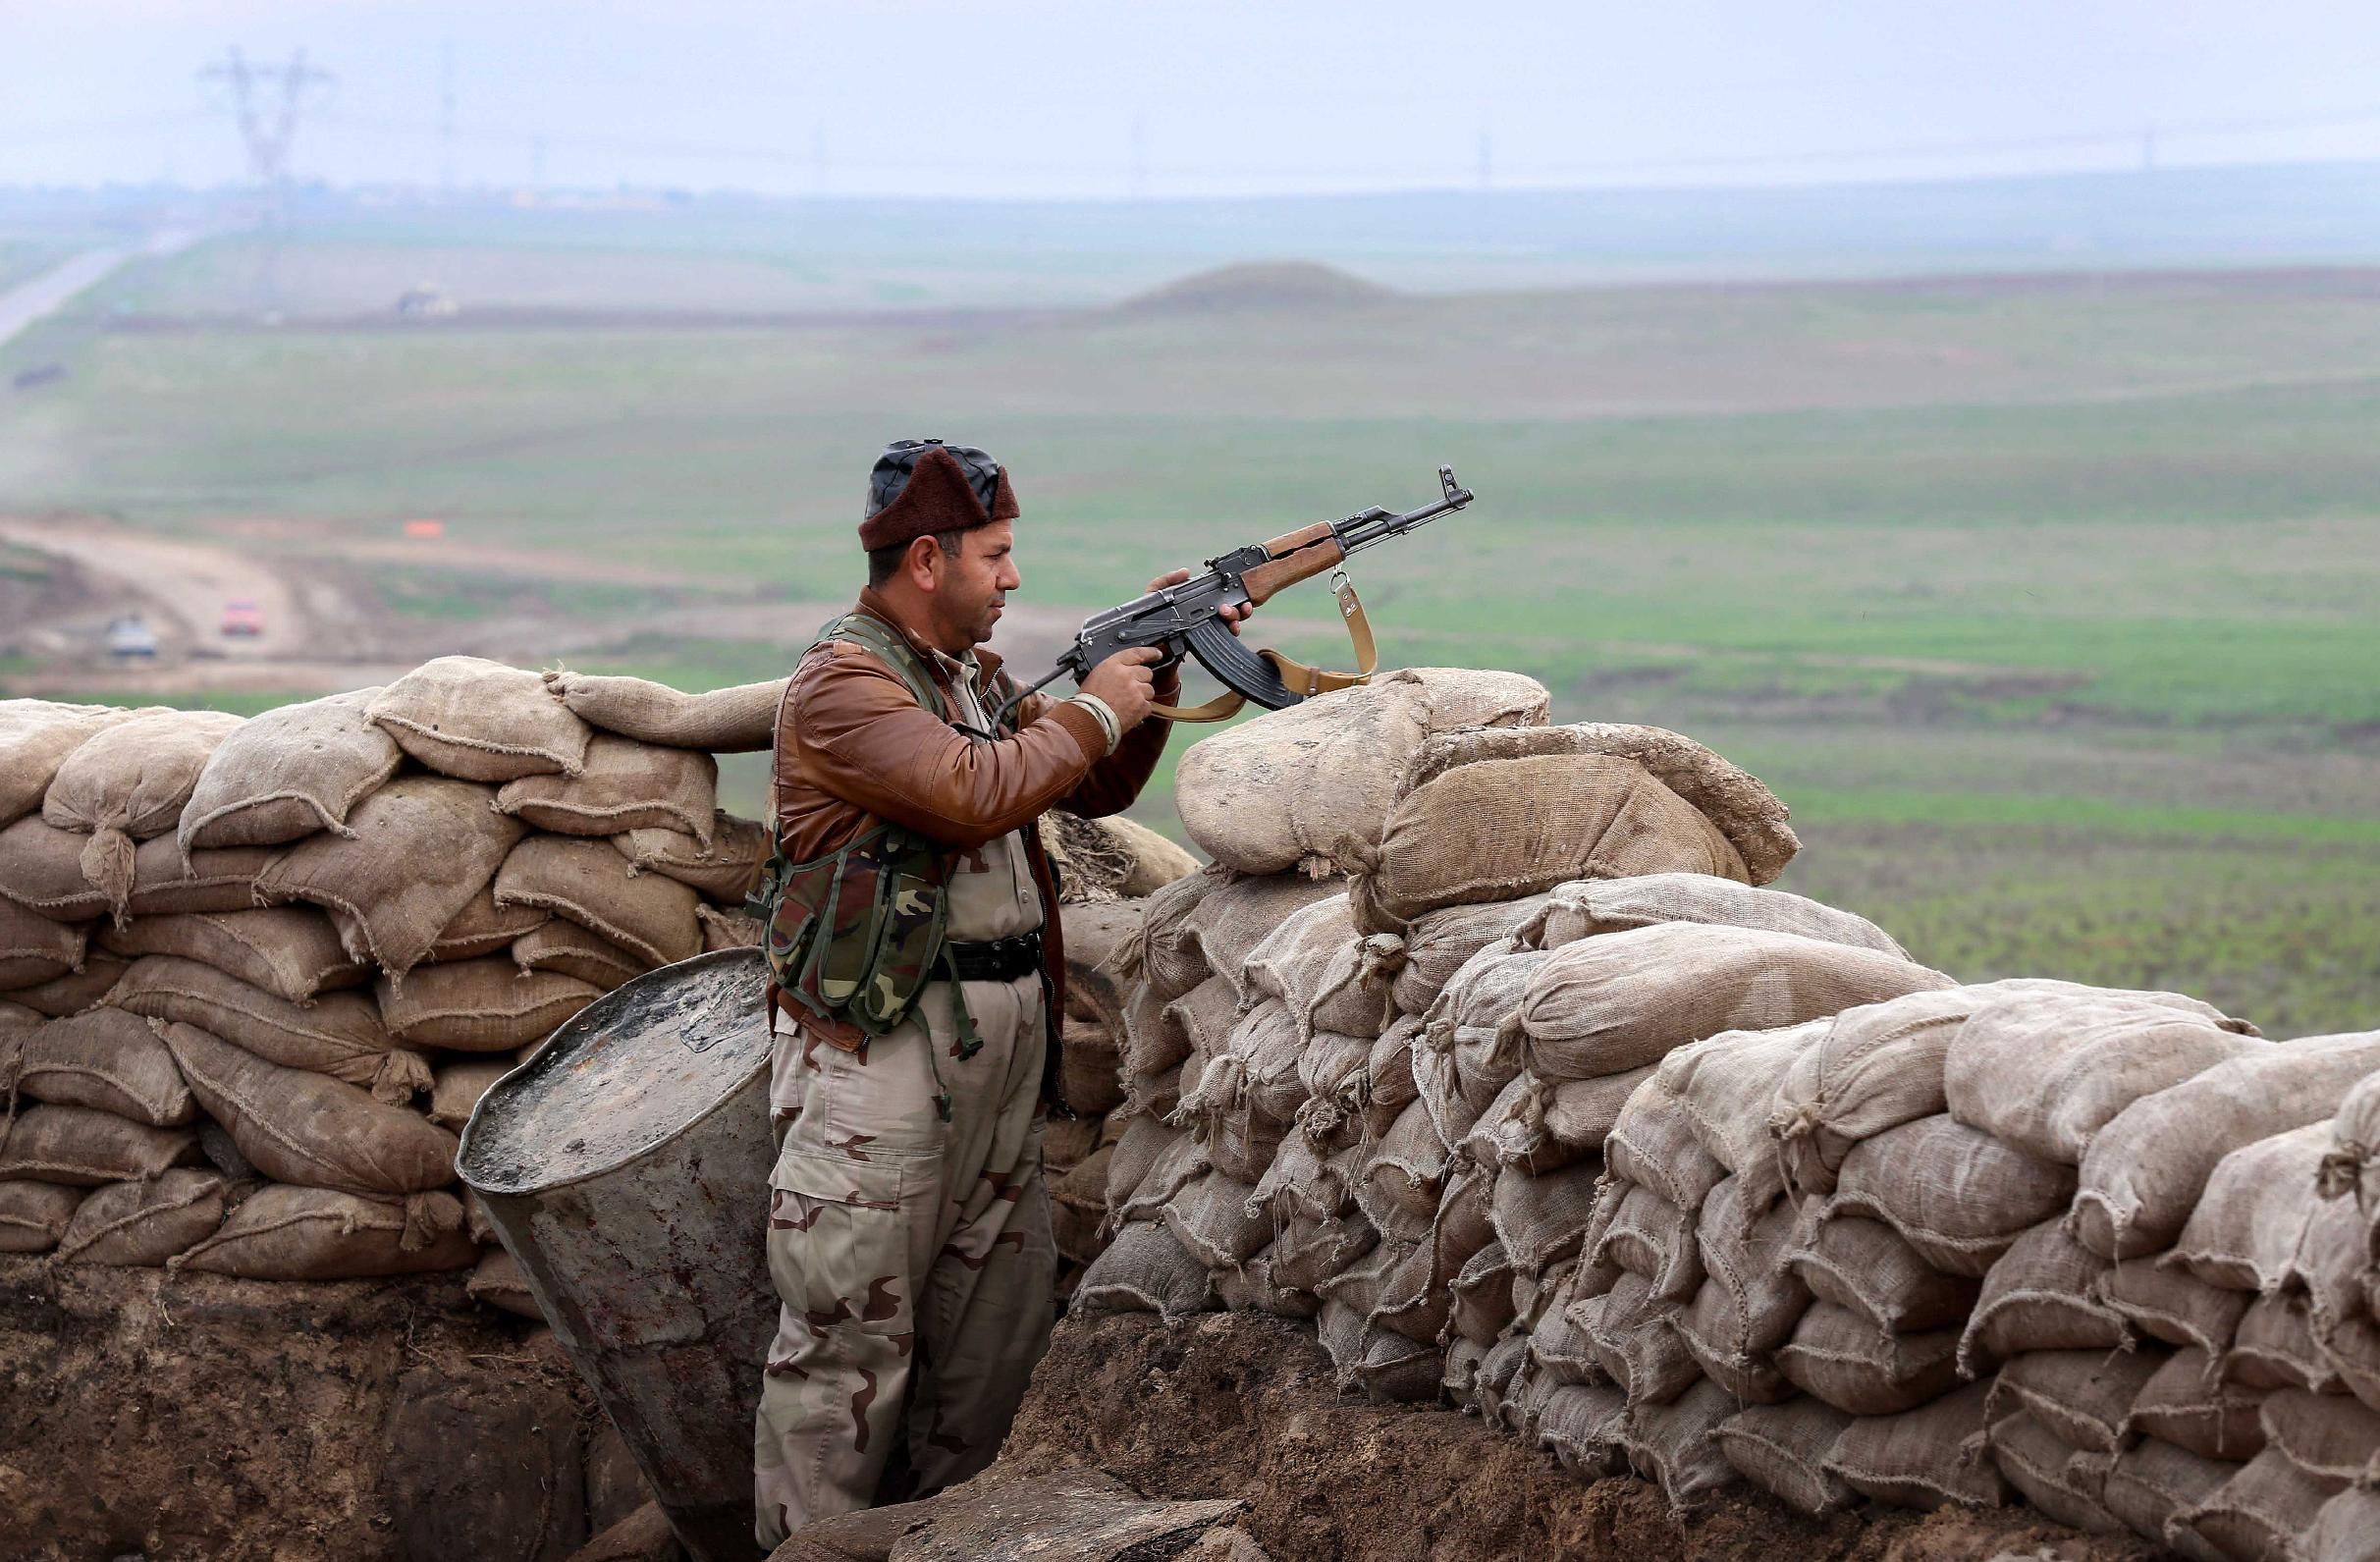 Iraq Kurds press fightback as top jihadist reported killed